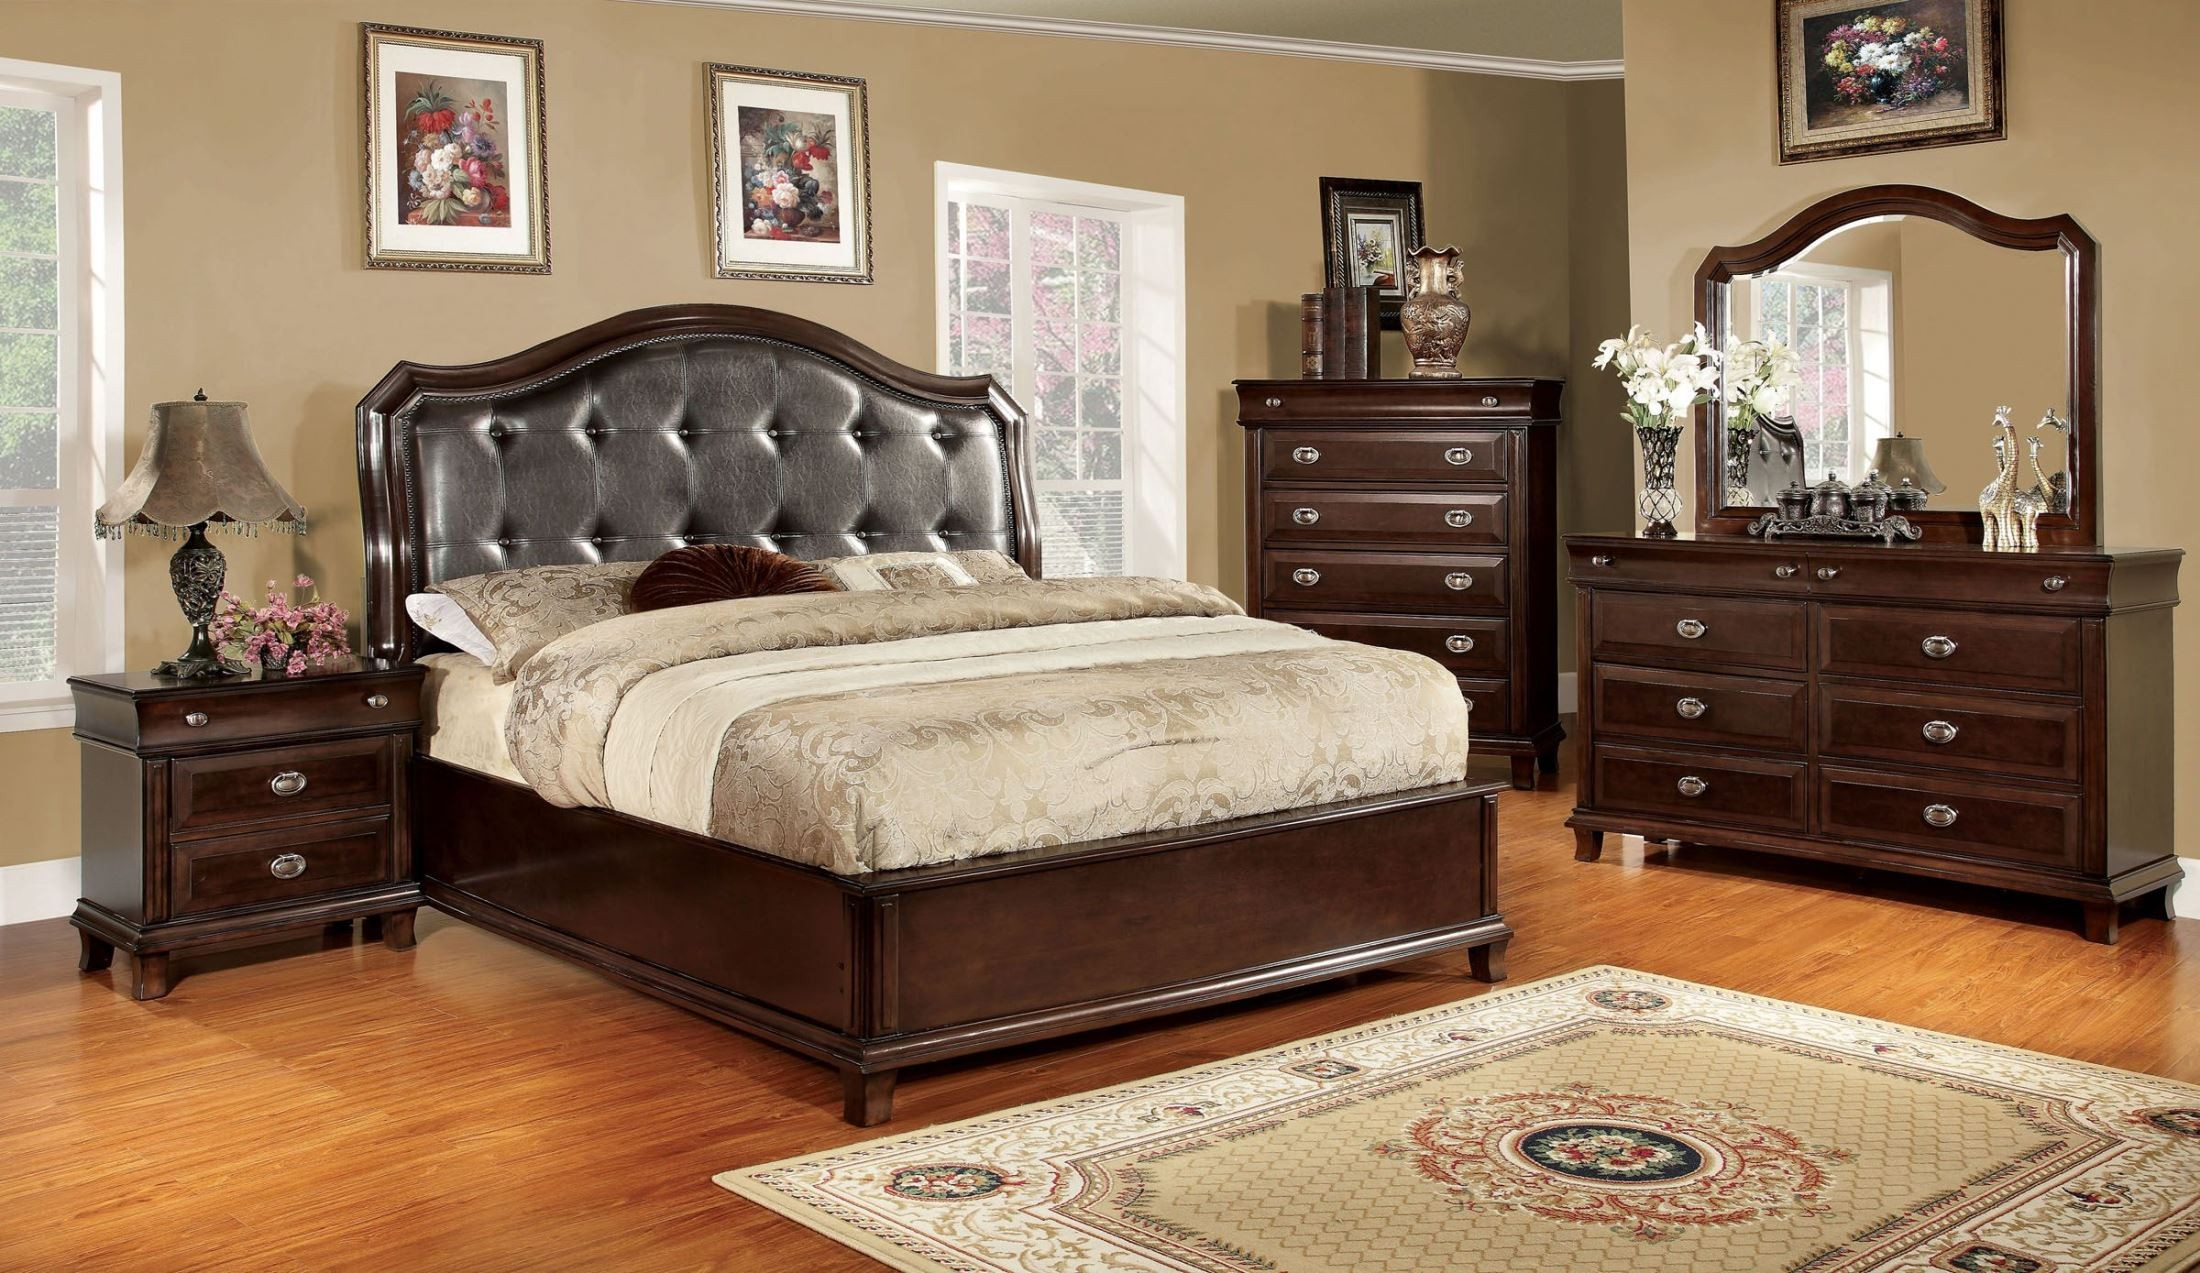 Arden Brown Cherry Faux Leather Cal King Bed from Furniture of America CM70